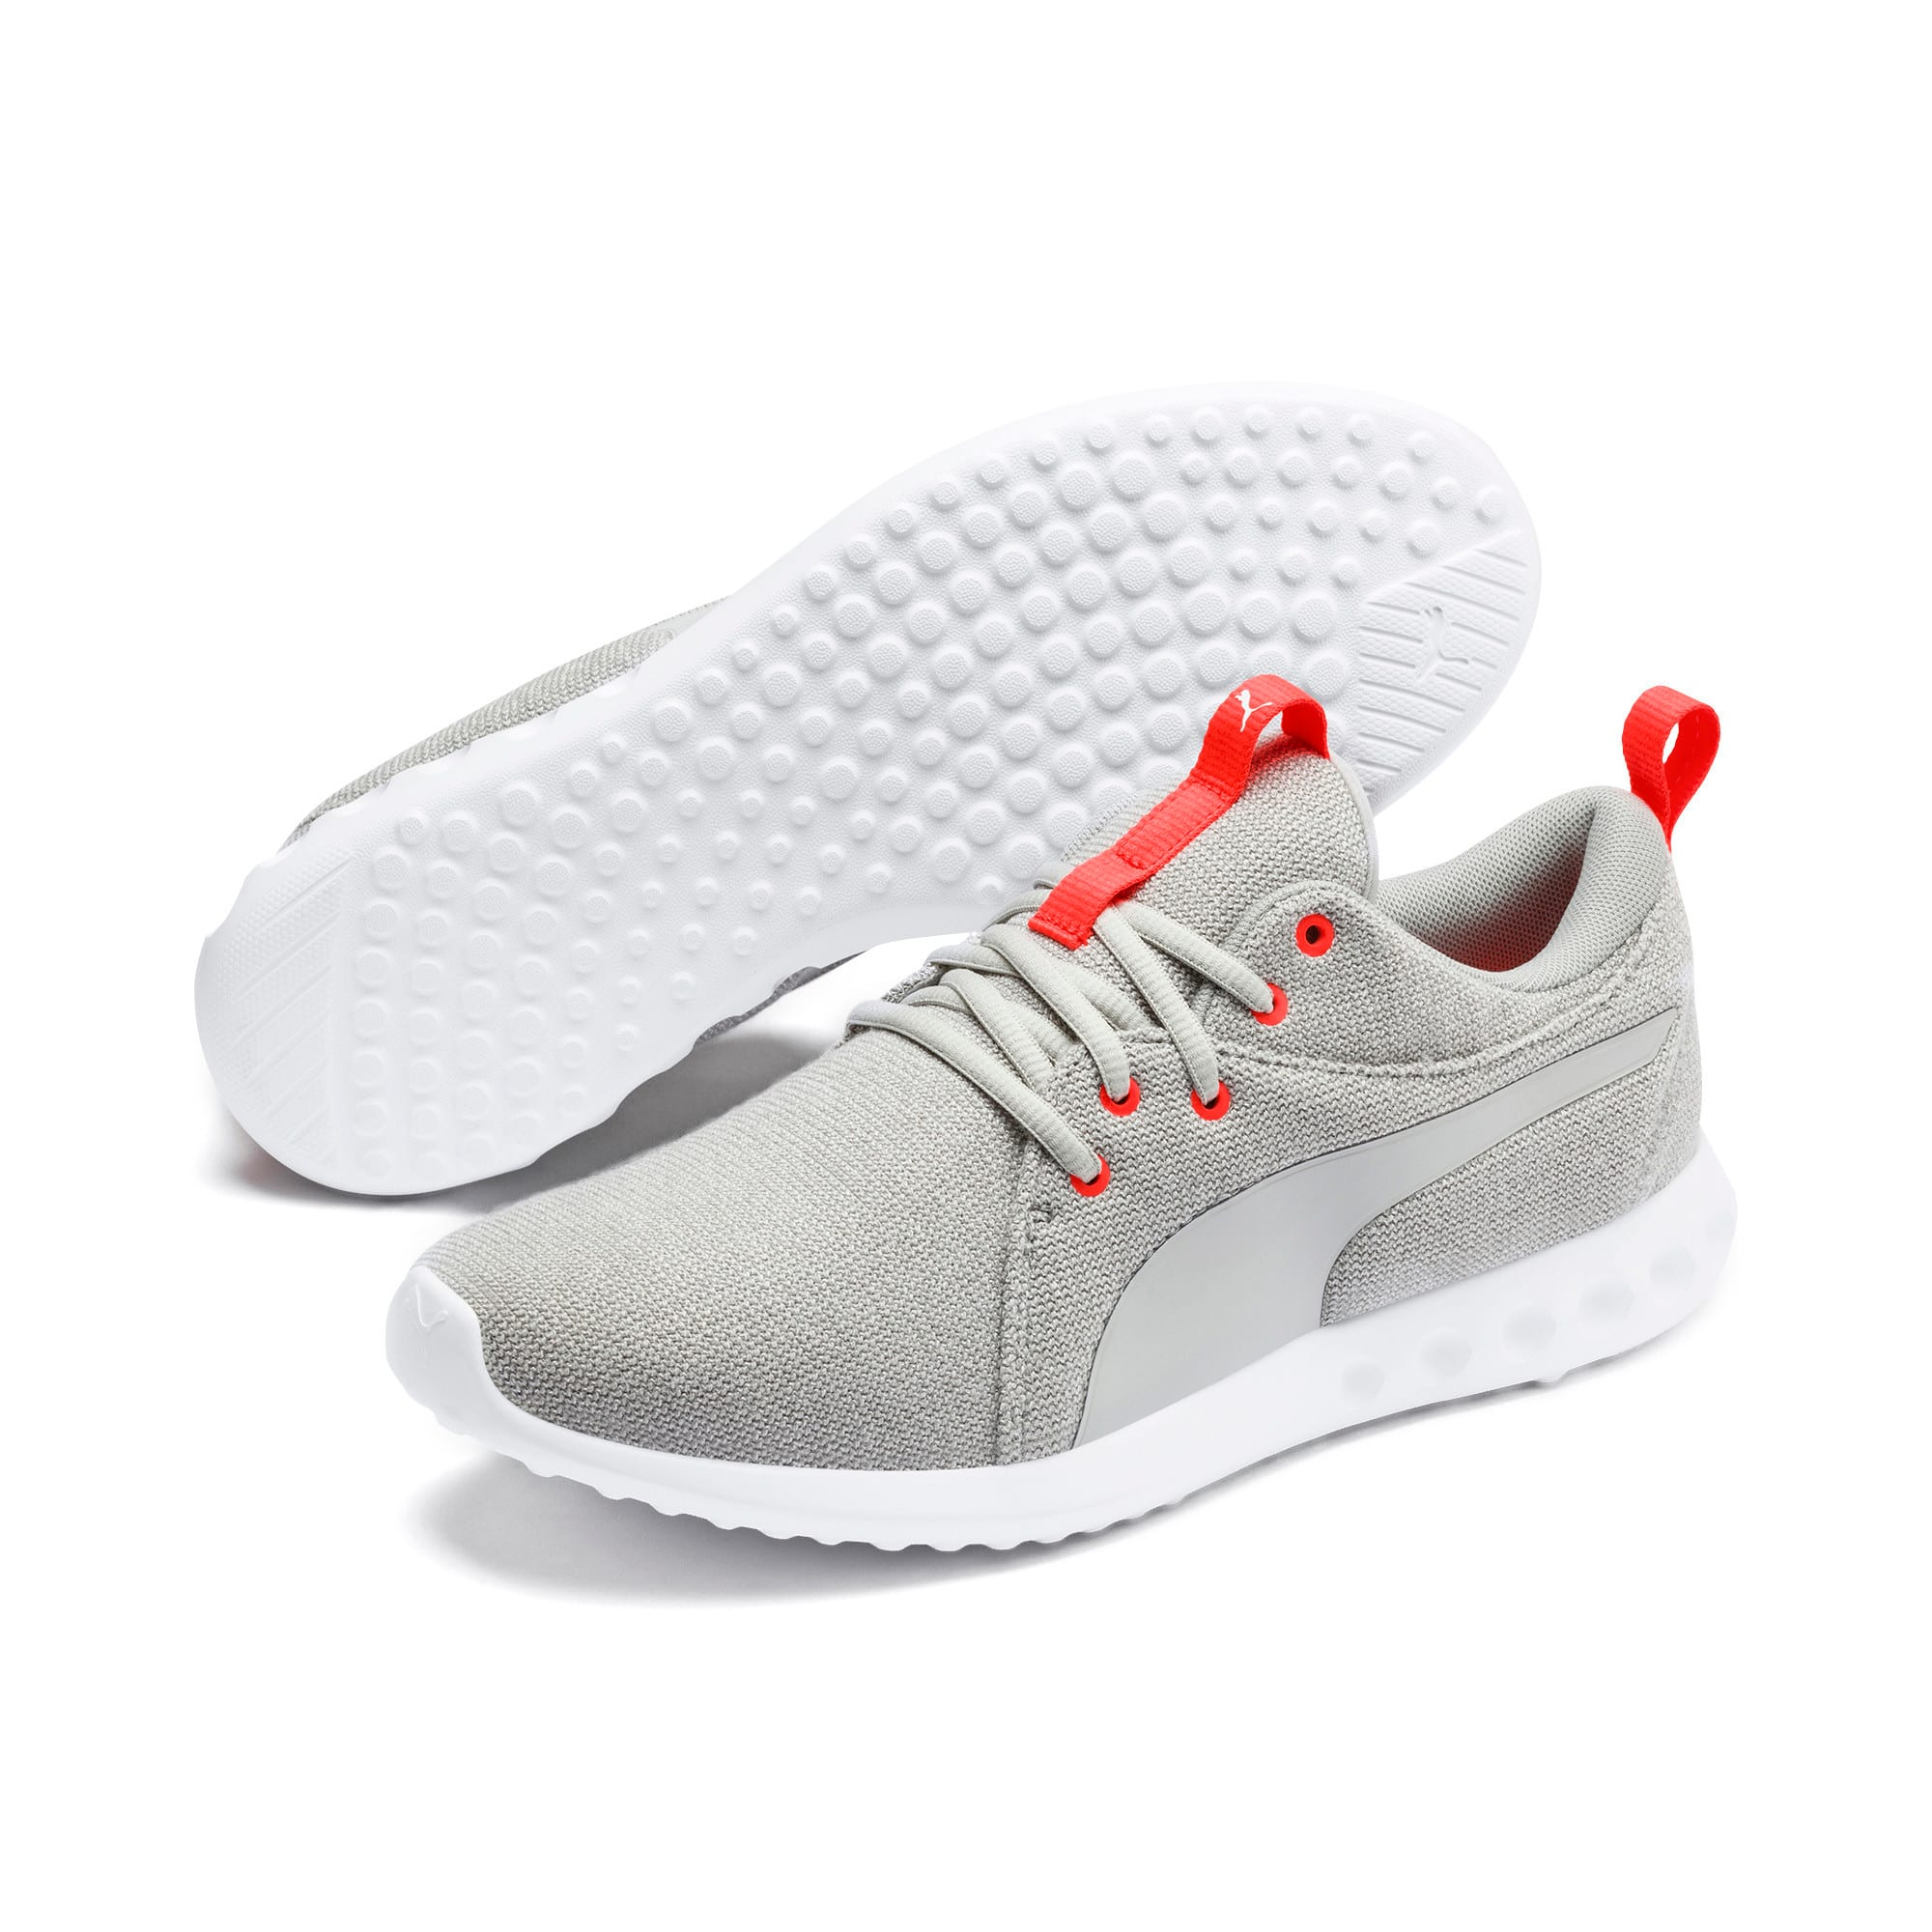 Thumbnail 2 of Carson 2 Knit Men's Training Shoes, High Rise-White-Nrgy Red, medium